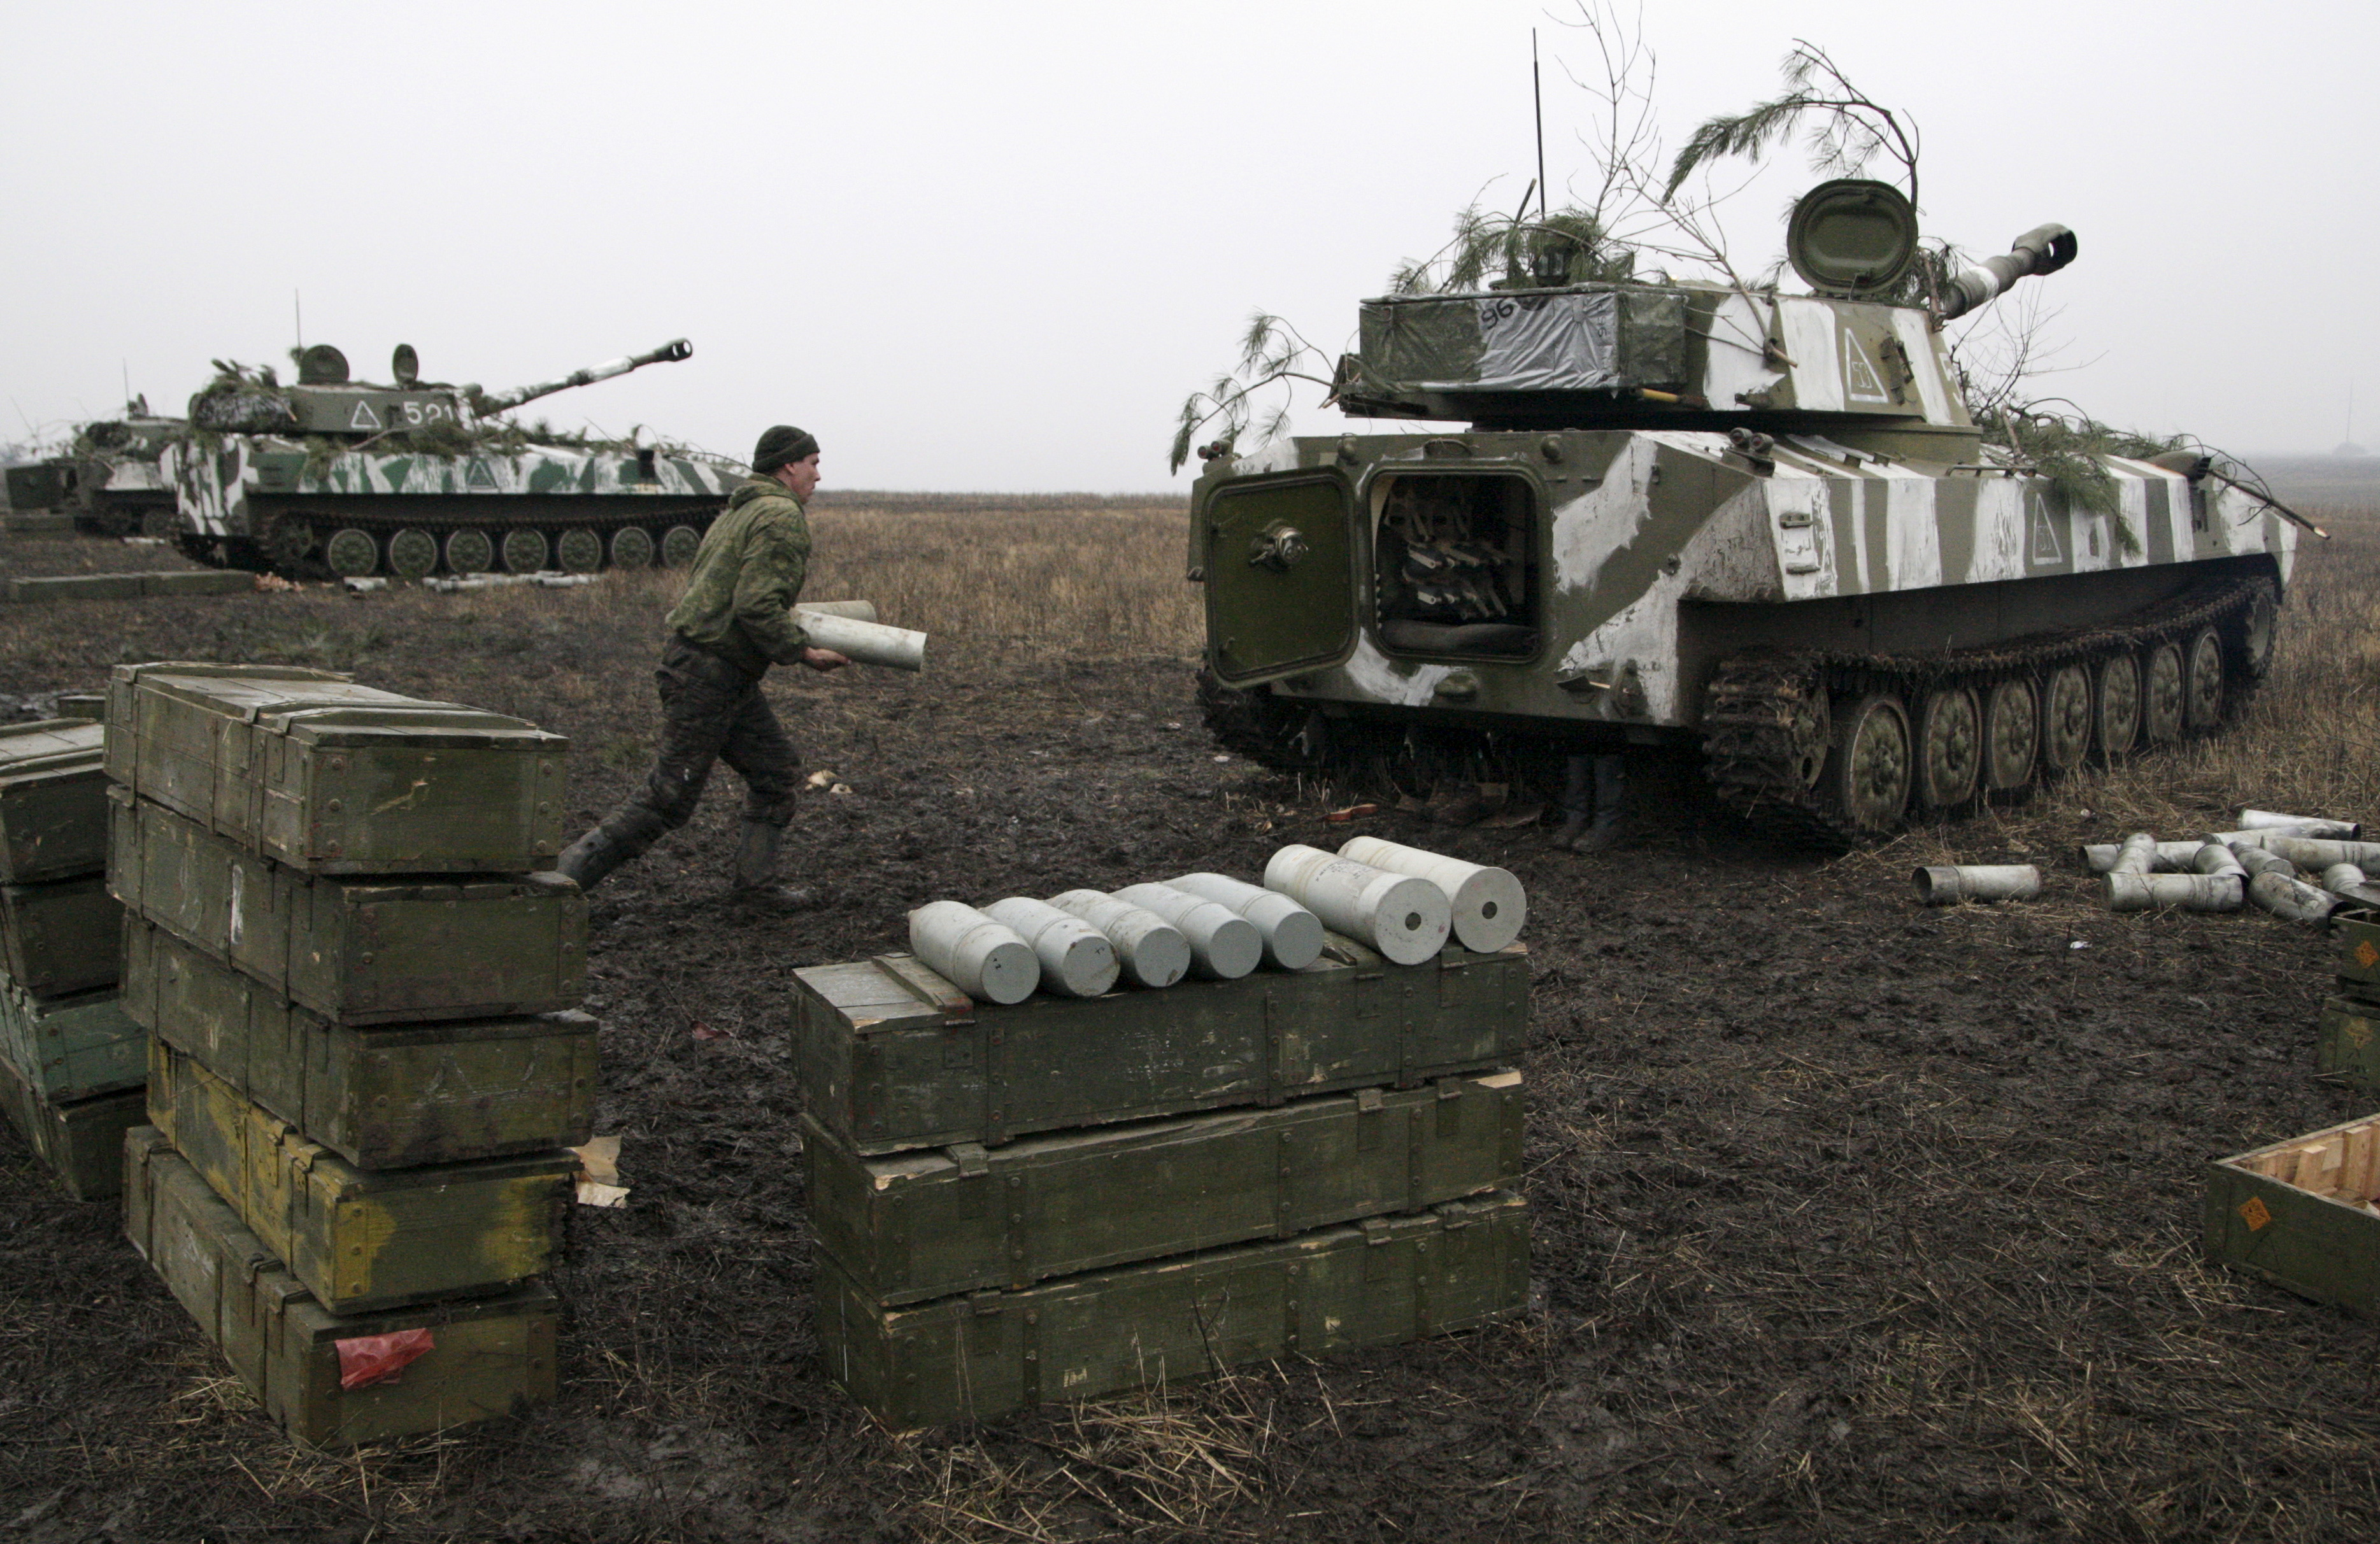 A member of the self-proclaimed Donetsk People's Republic forces loads a shell onto a self-propelled artillery gun during tactical training exercises in Donetsk region, Ukraine, on Feb. 4, 2016